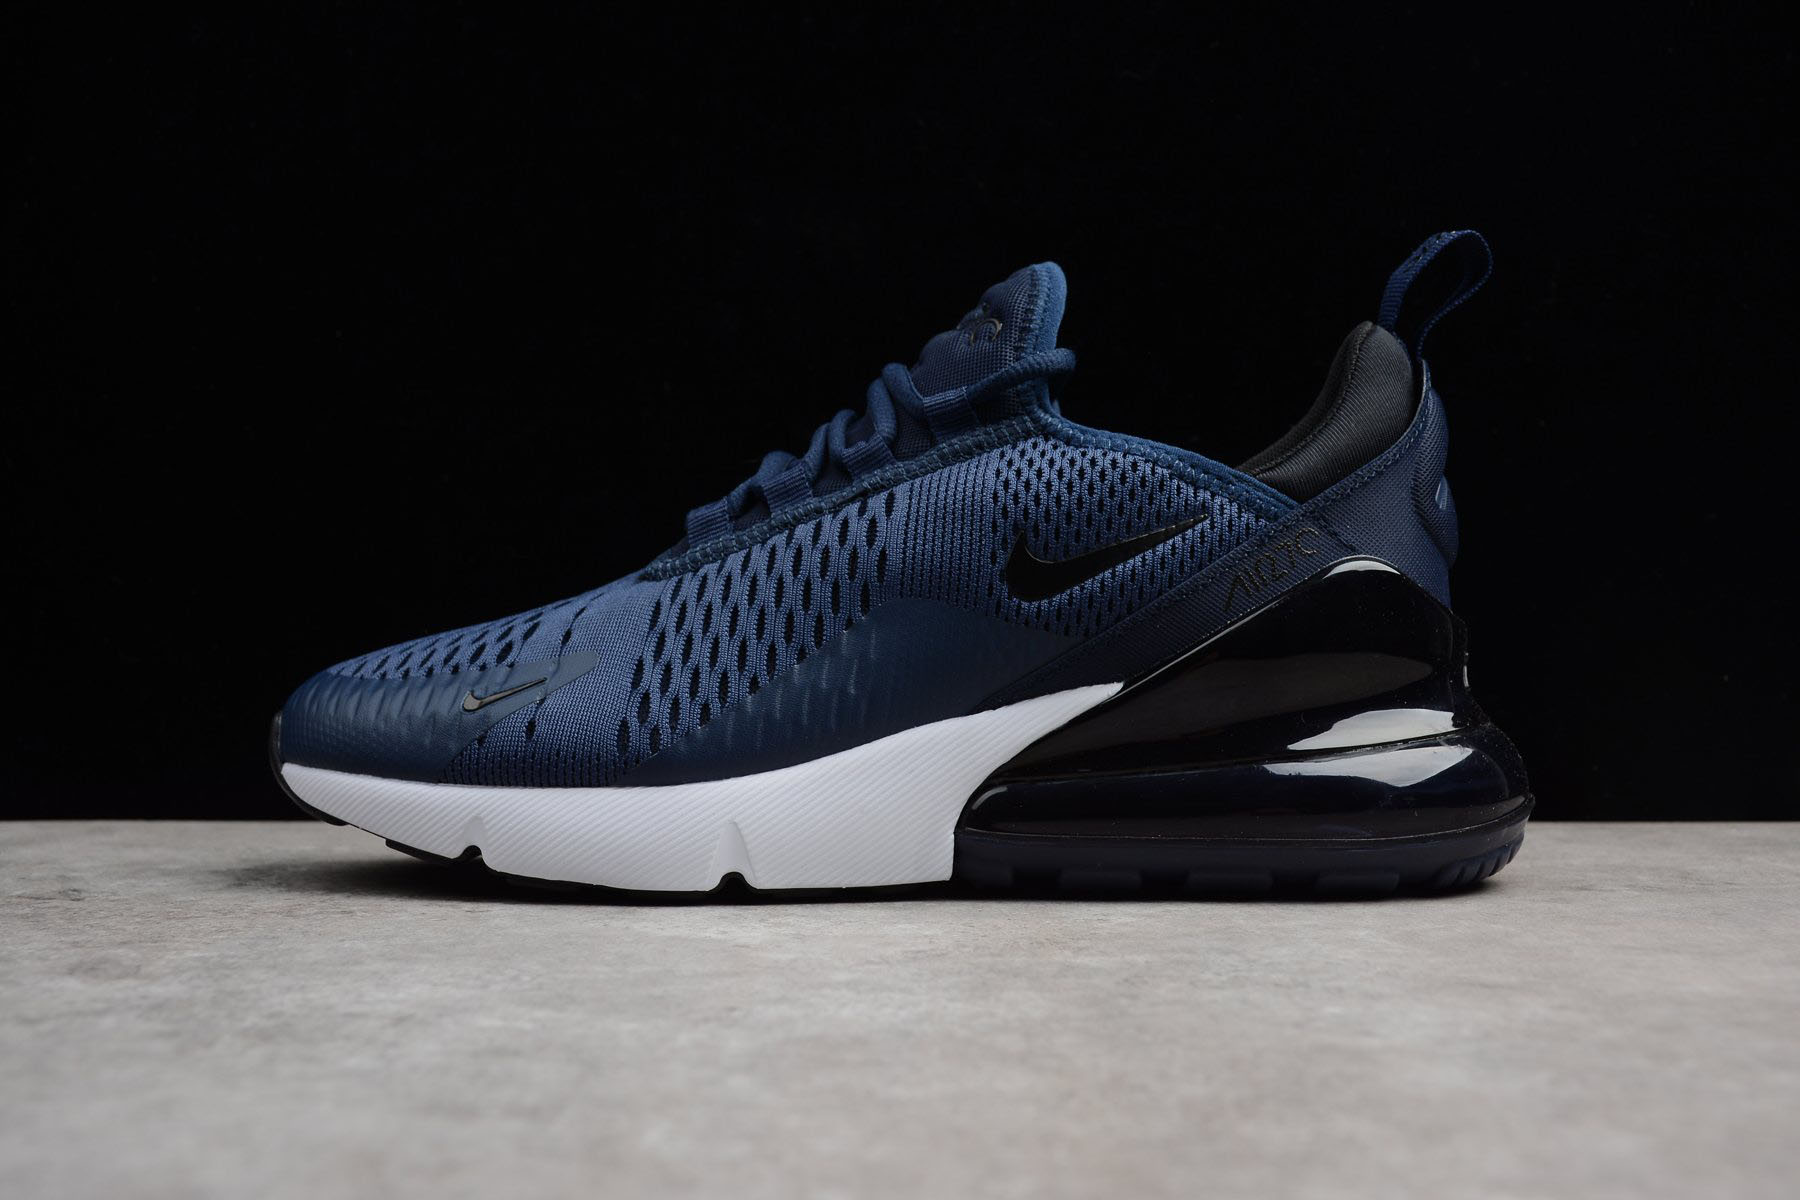 nike air max 270 navy blue and white